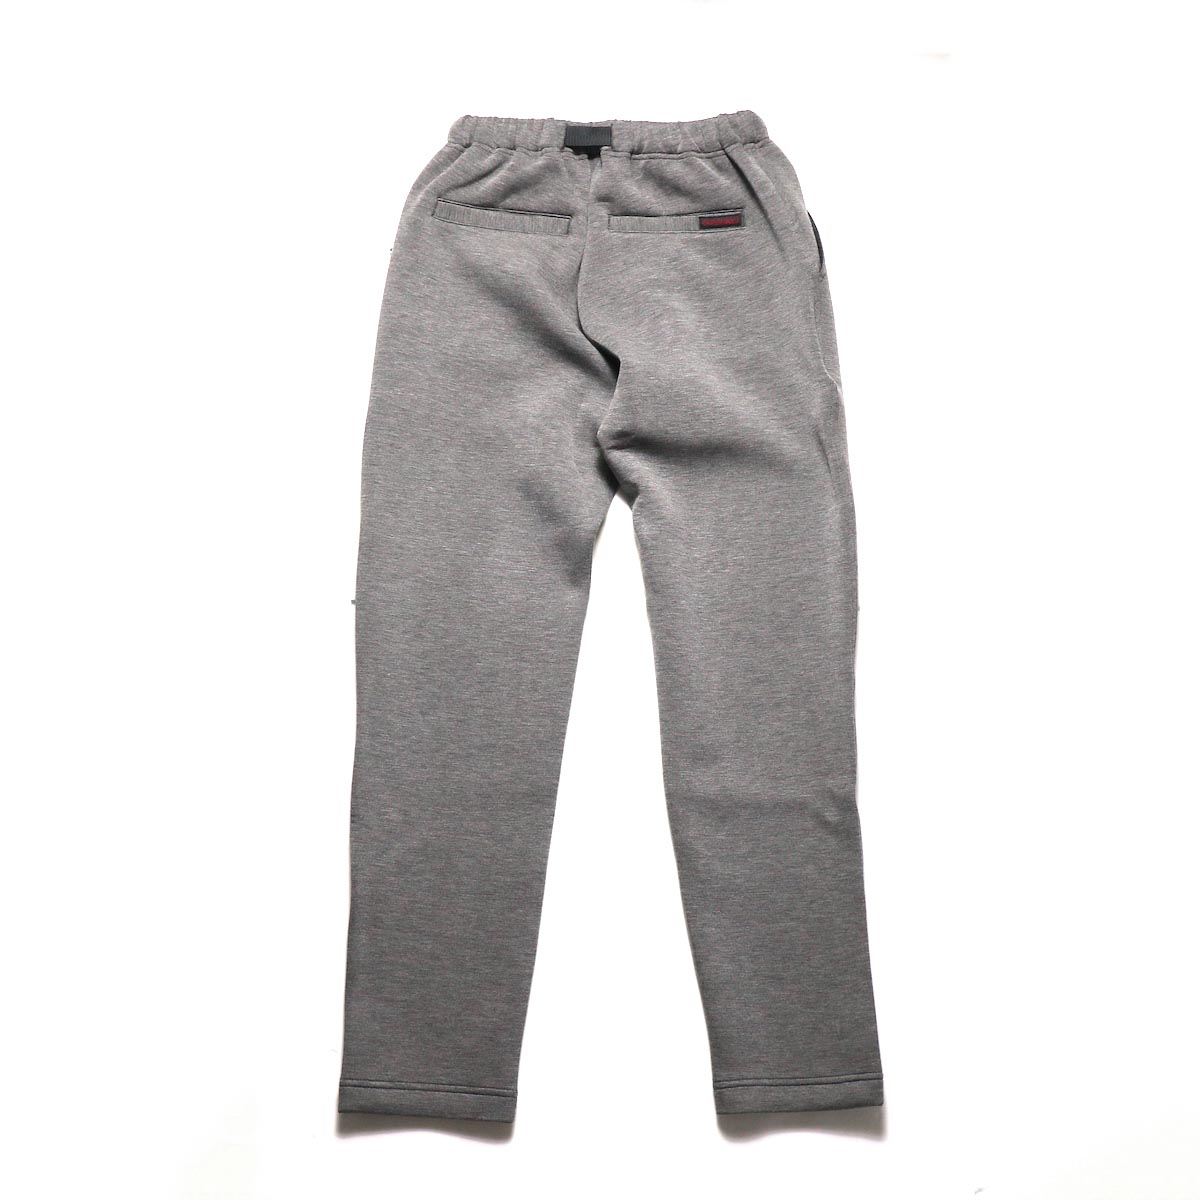 GRAMICCI / TECK KNIT SLIM FIT PANTS (Heather Charcoal)背面